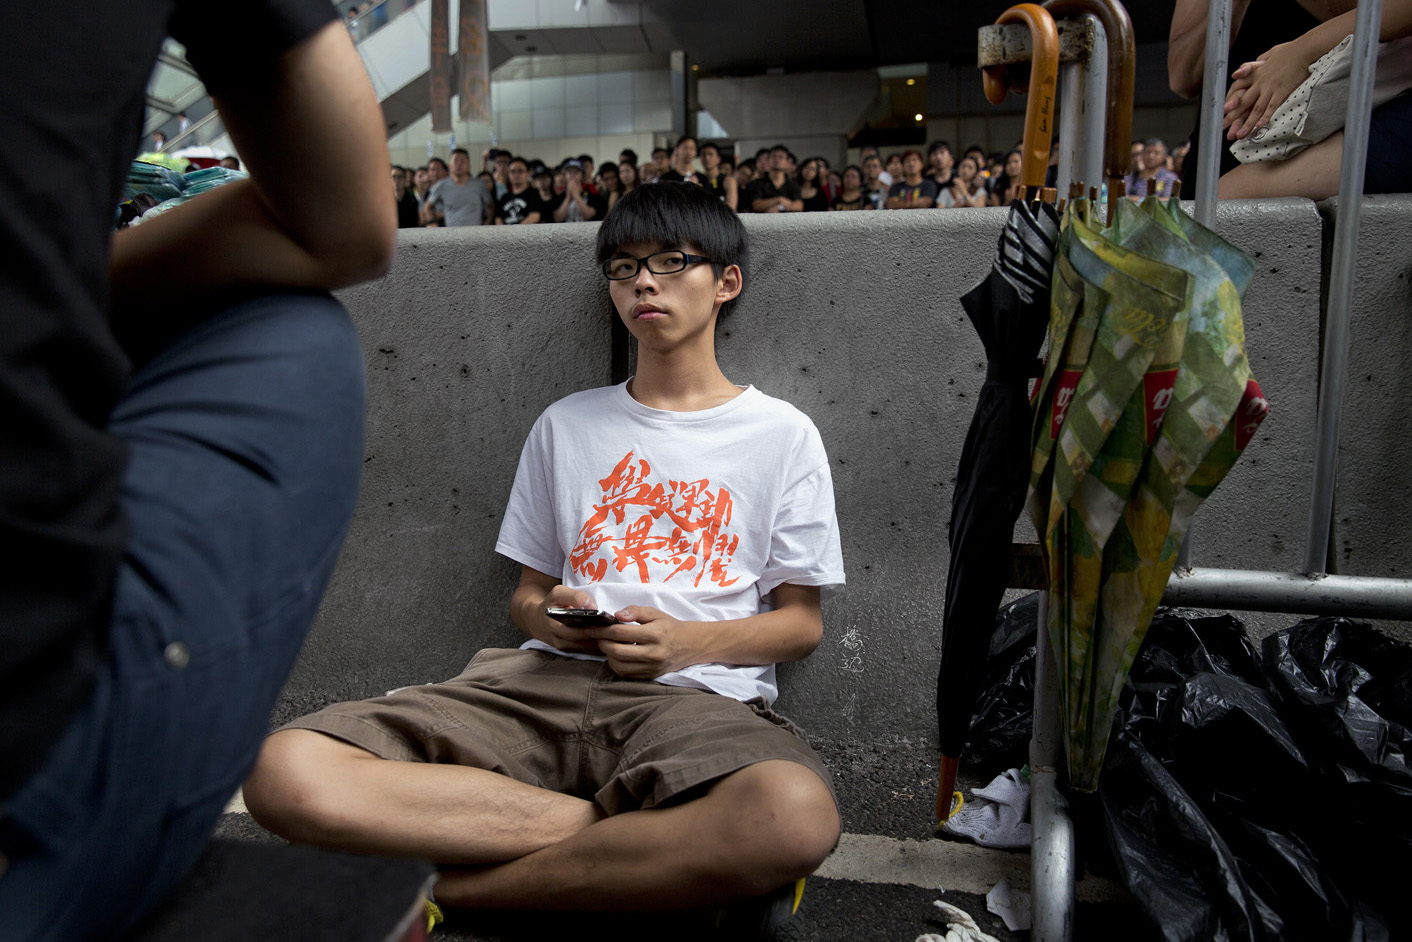 Joshua Wong, 17-year-old protest leader, is a co-founder of the group Scholarism, which helped kick-start the Hong Kong protests